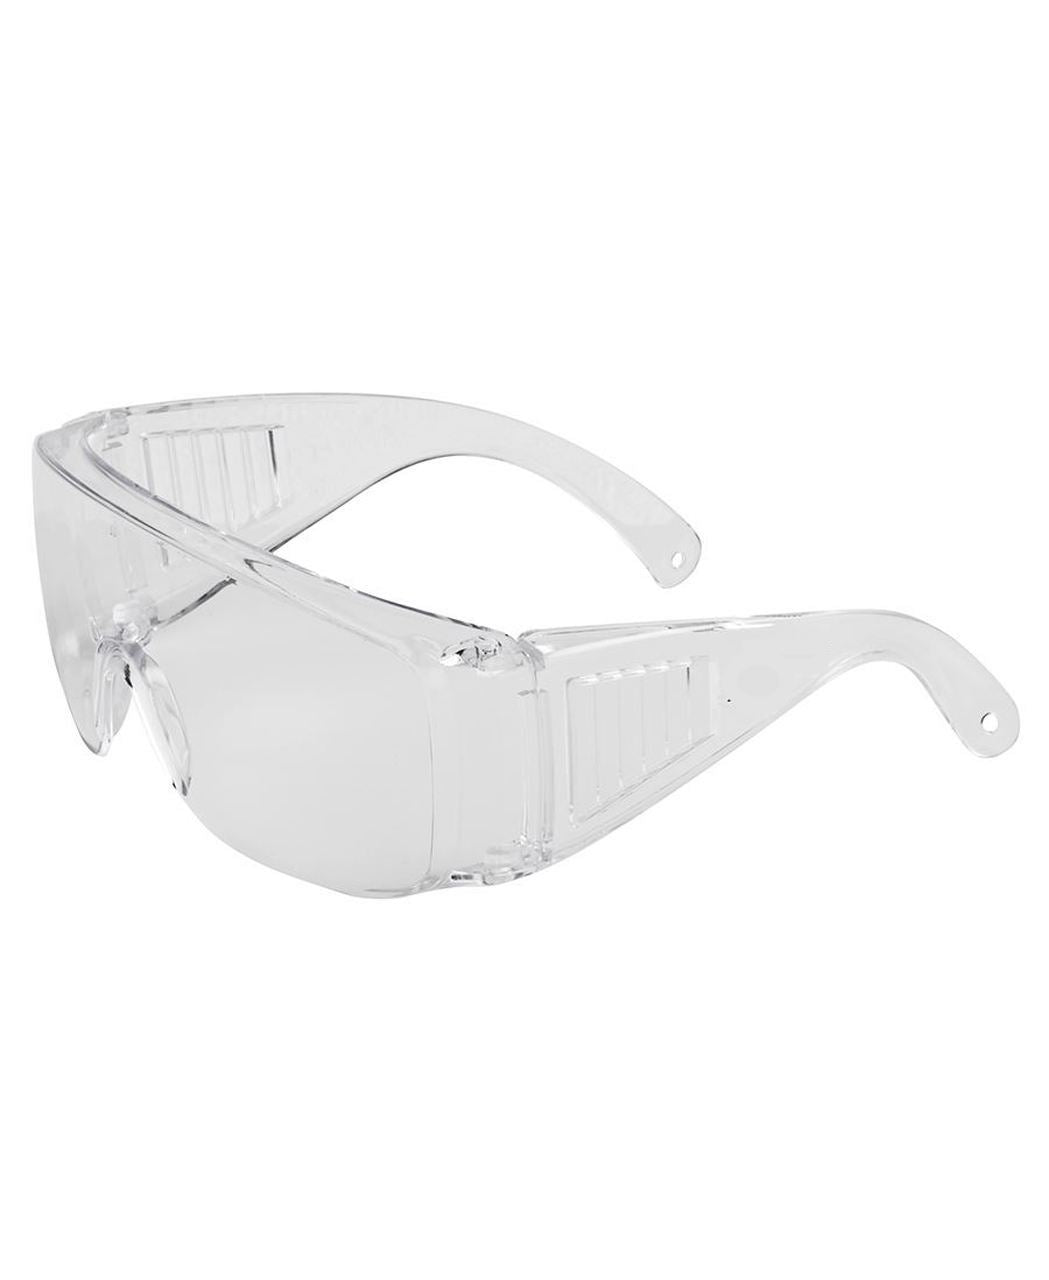 Safety Glasses - Solomon Brothers Apparel